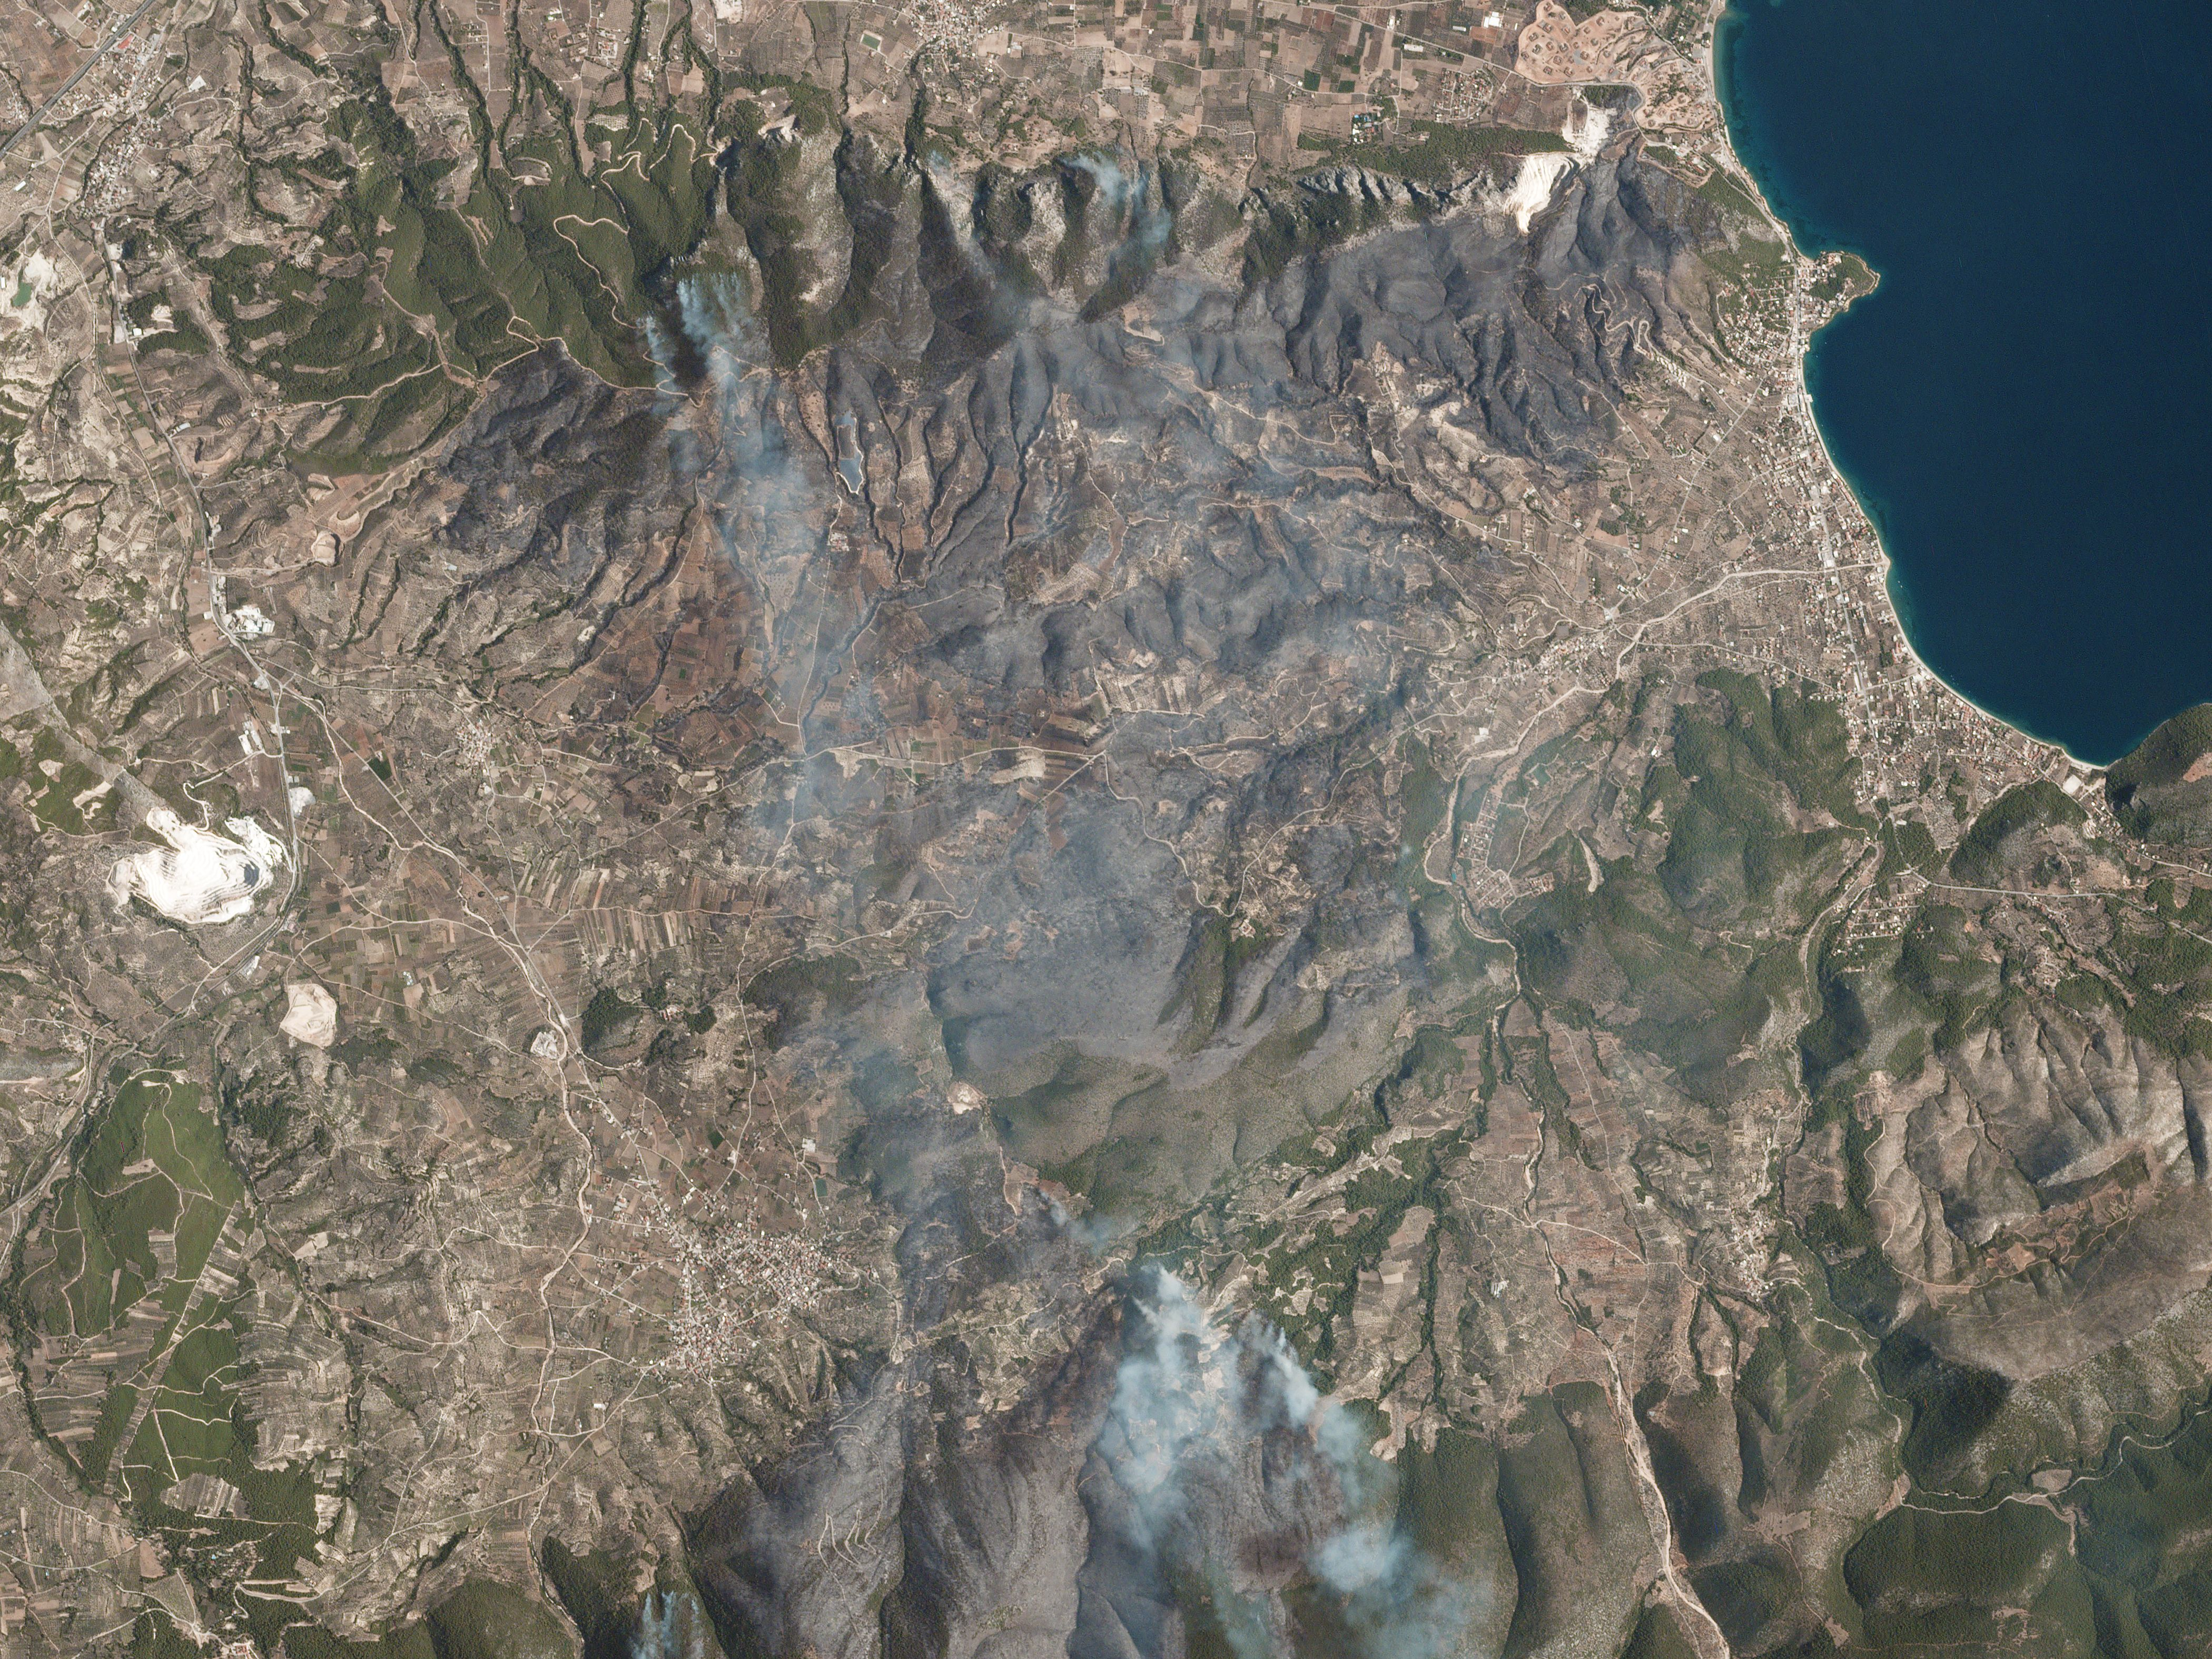 PlanetScope image of Corinthia, Greece on Jul 24, 2020 © 2020, Planet Labs Inc. All Rights Reserved.